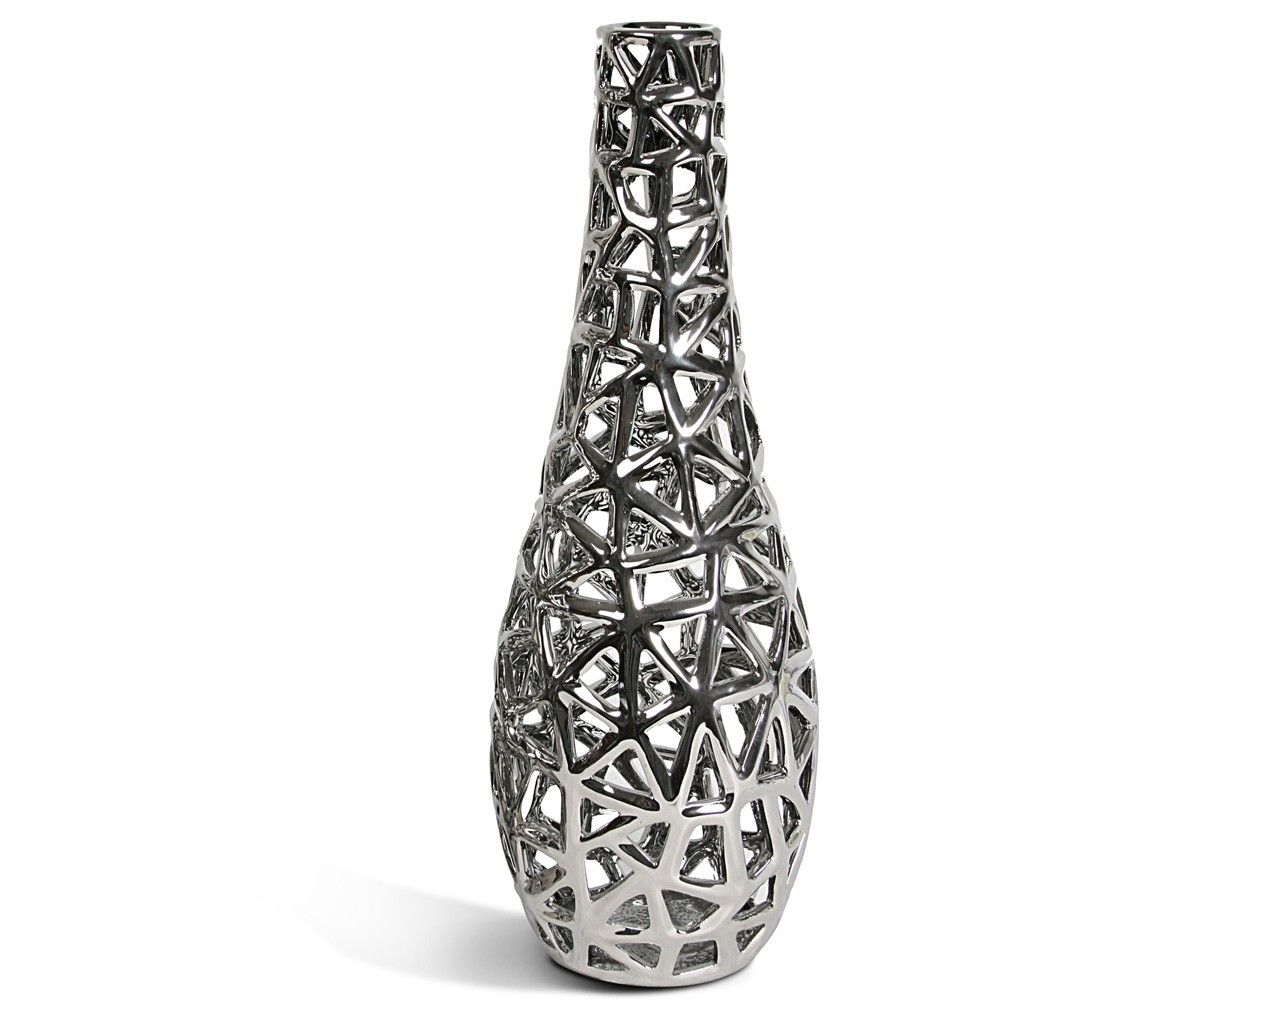 Chrome Decorative Bowl A Stylish And Contemporary Chrome Lattice Vase Available